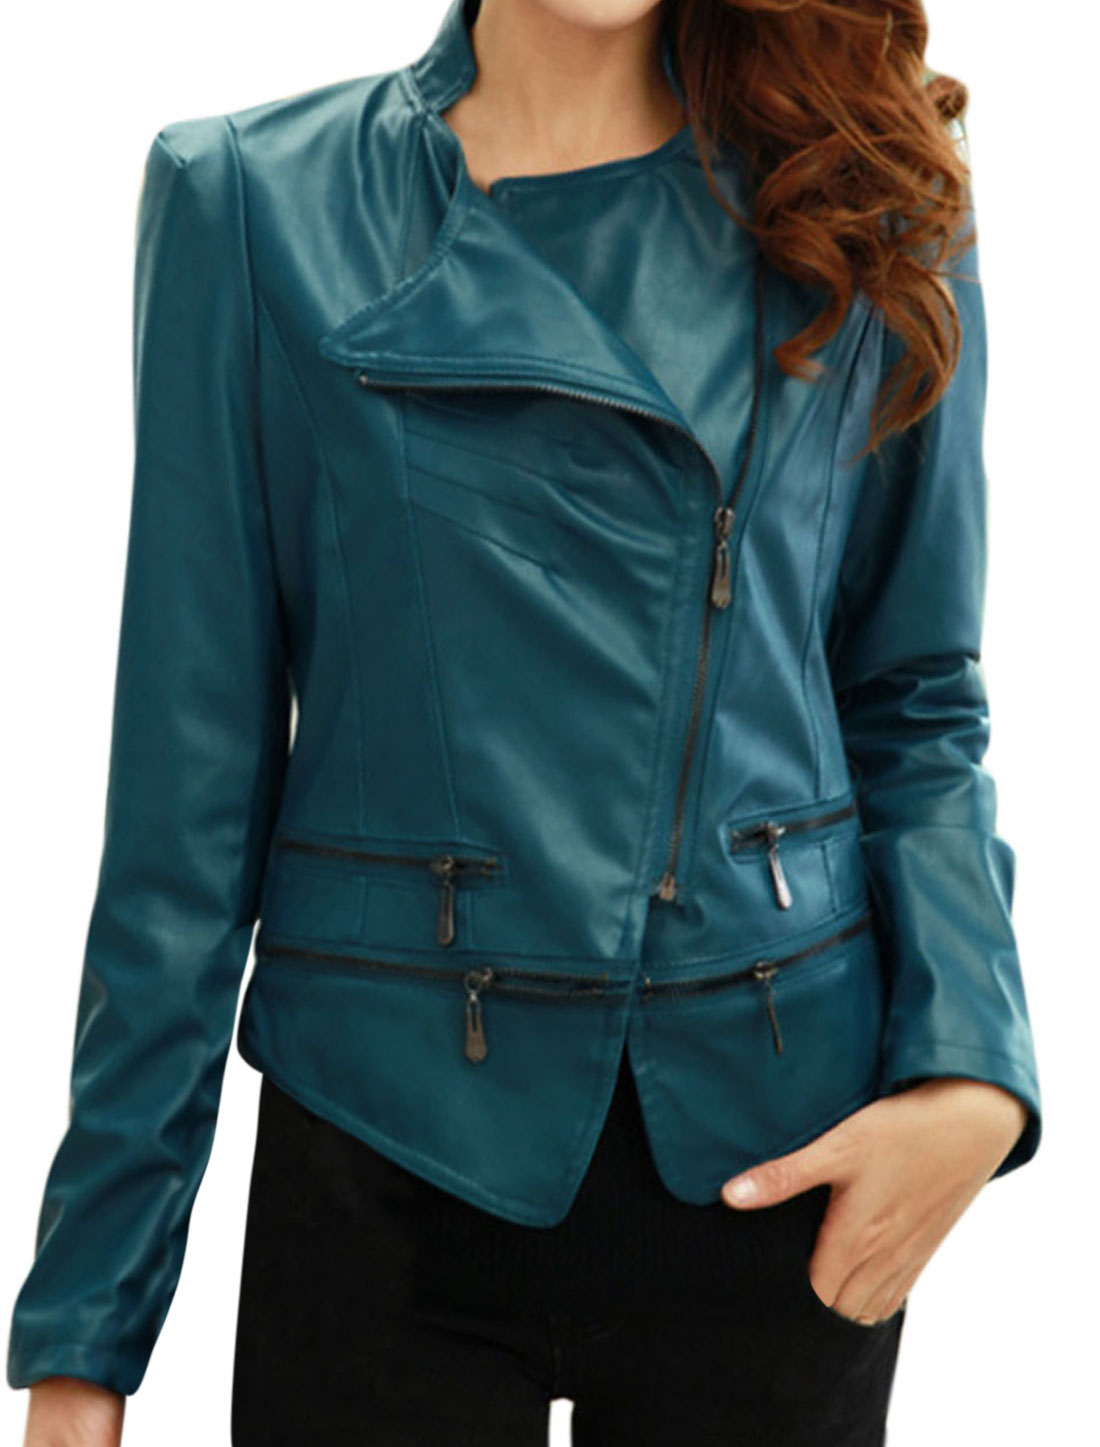 Slim Fit Casual Zipper Decor Imitation Leather Jacket for Lady Turquoise M